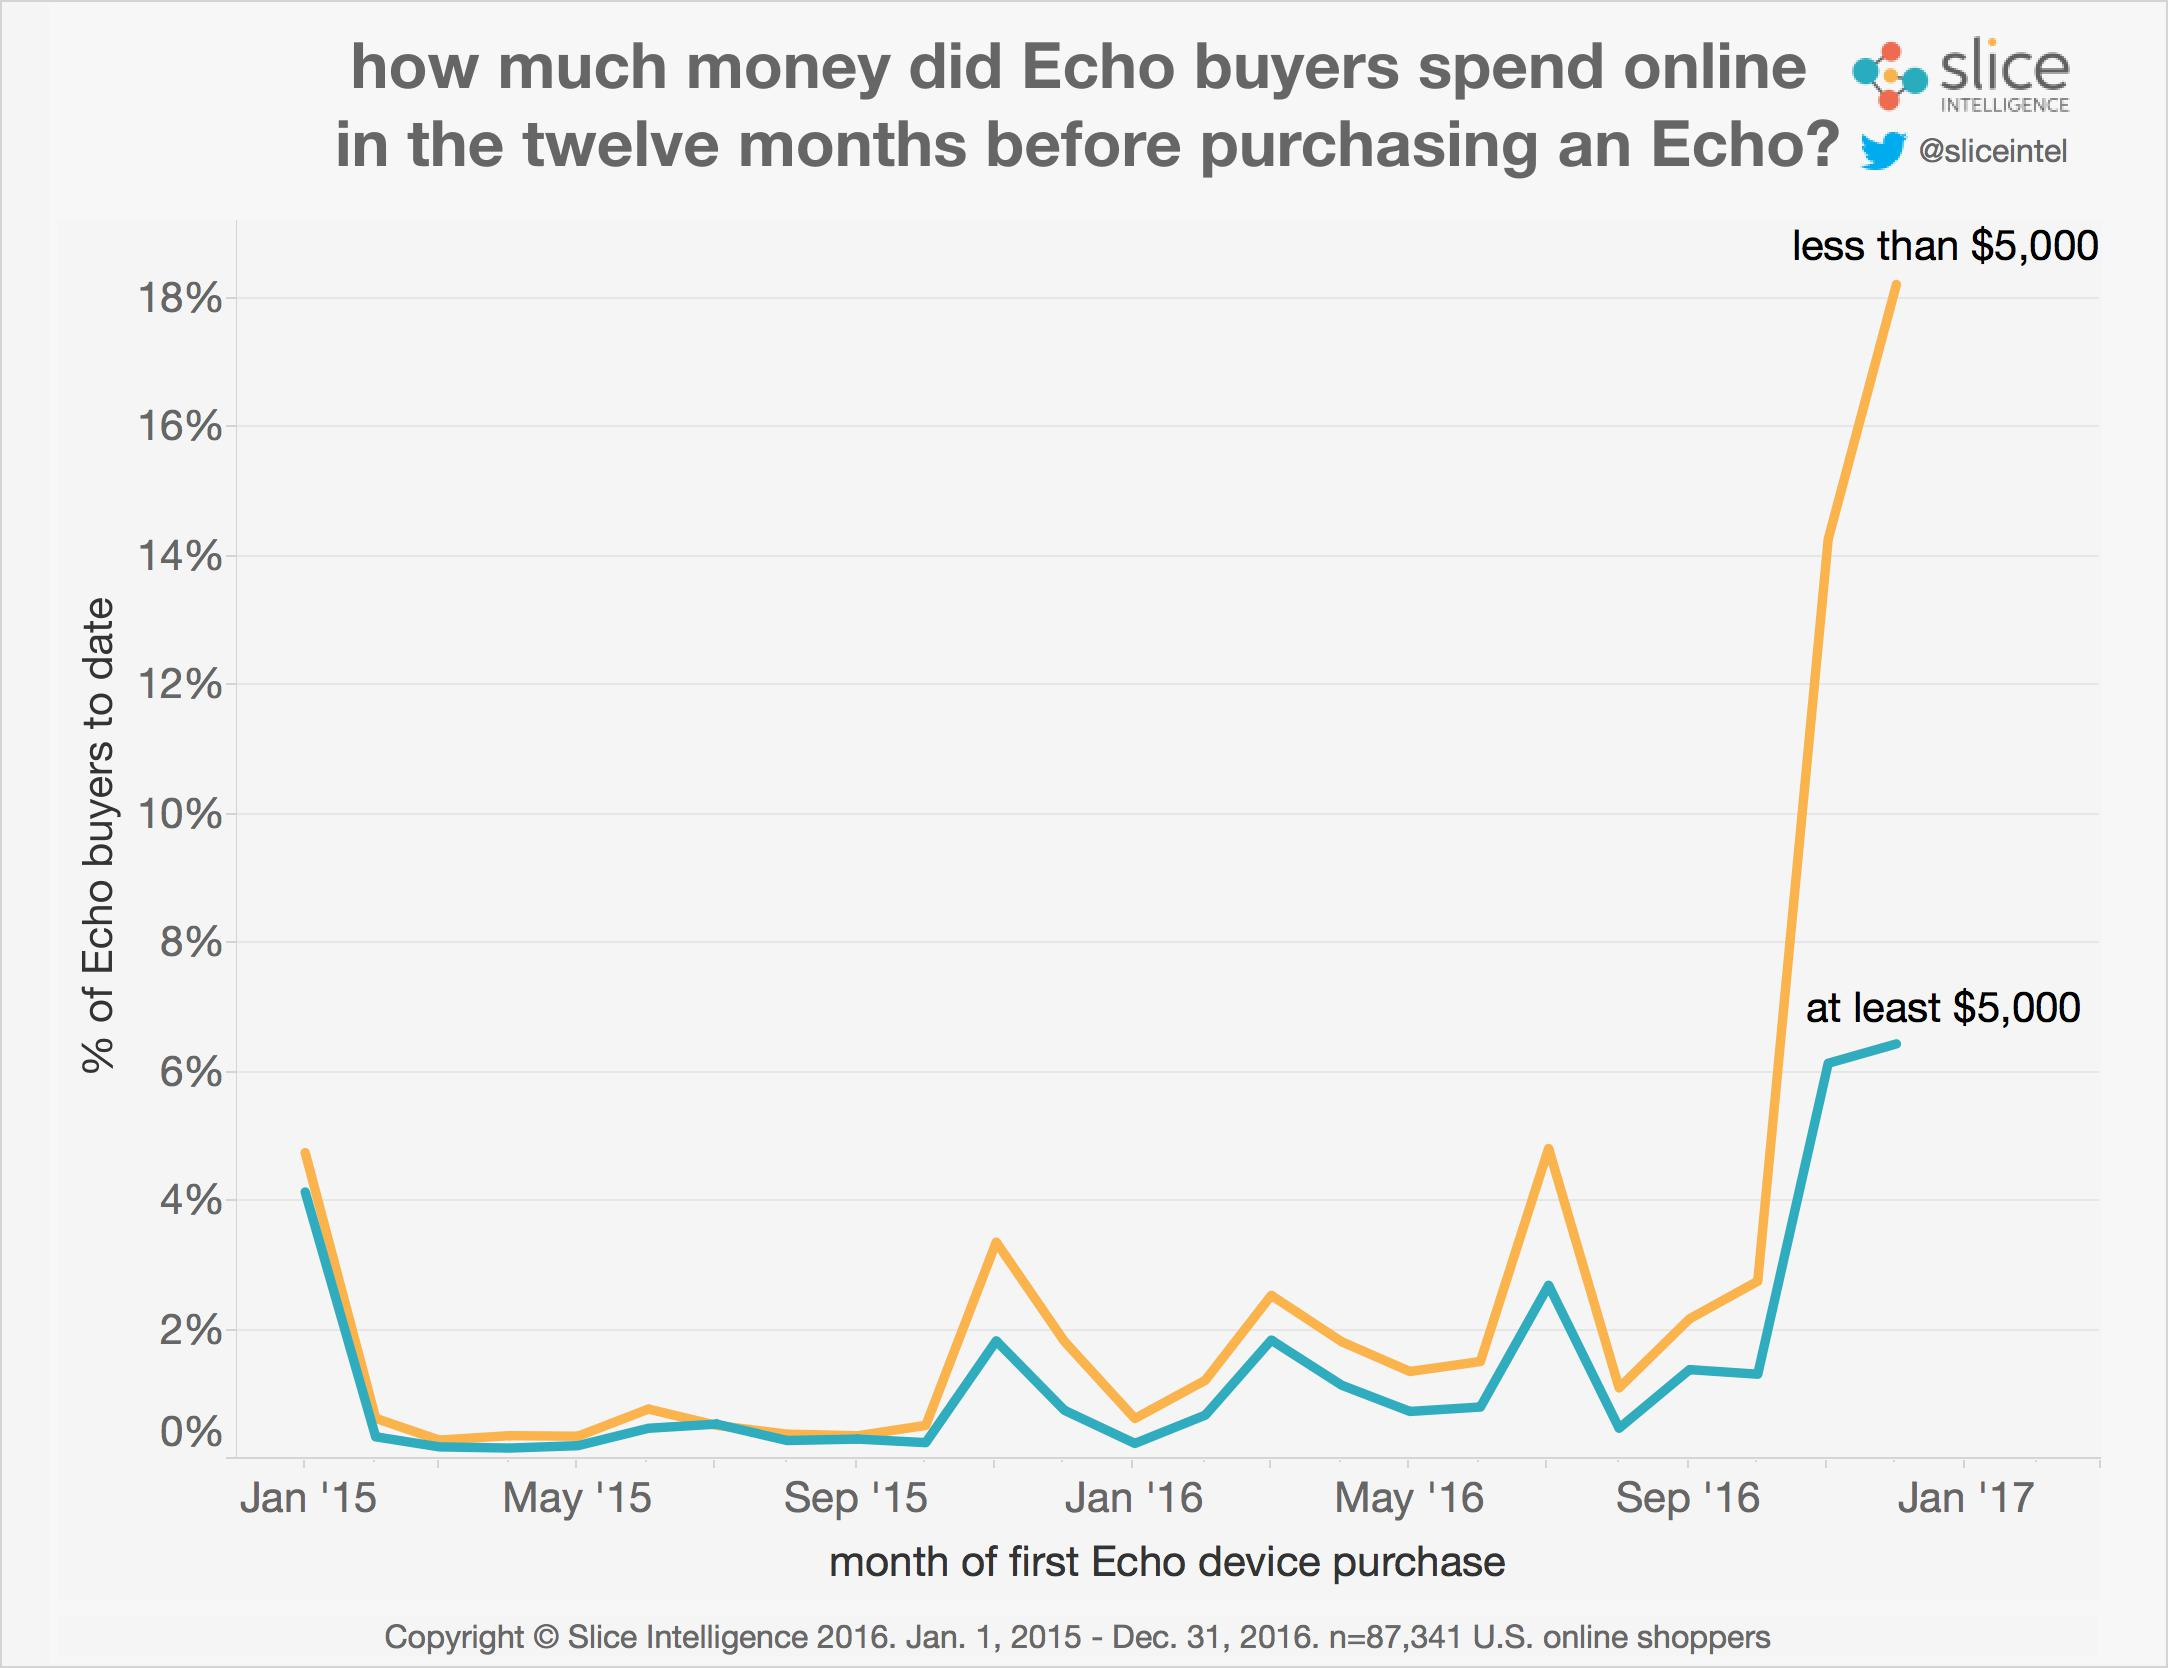 avg-spend-pre-echo-by-group